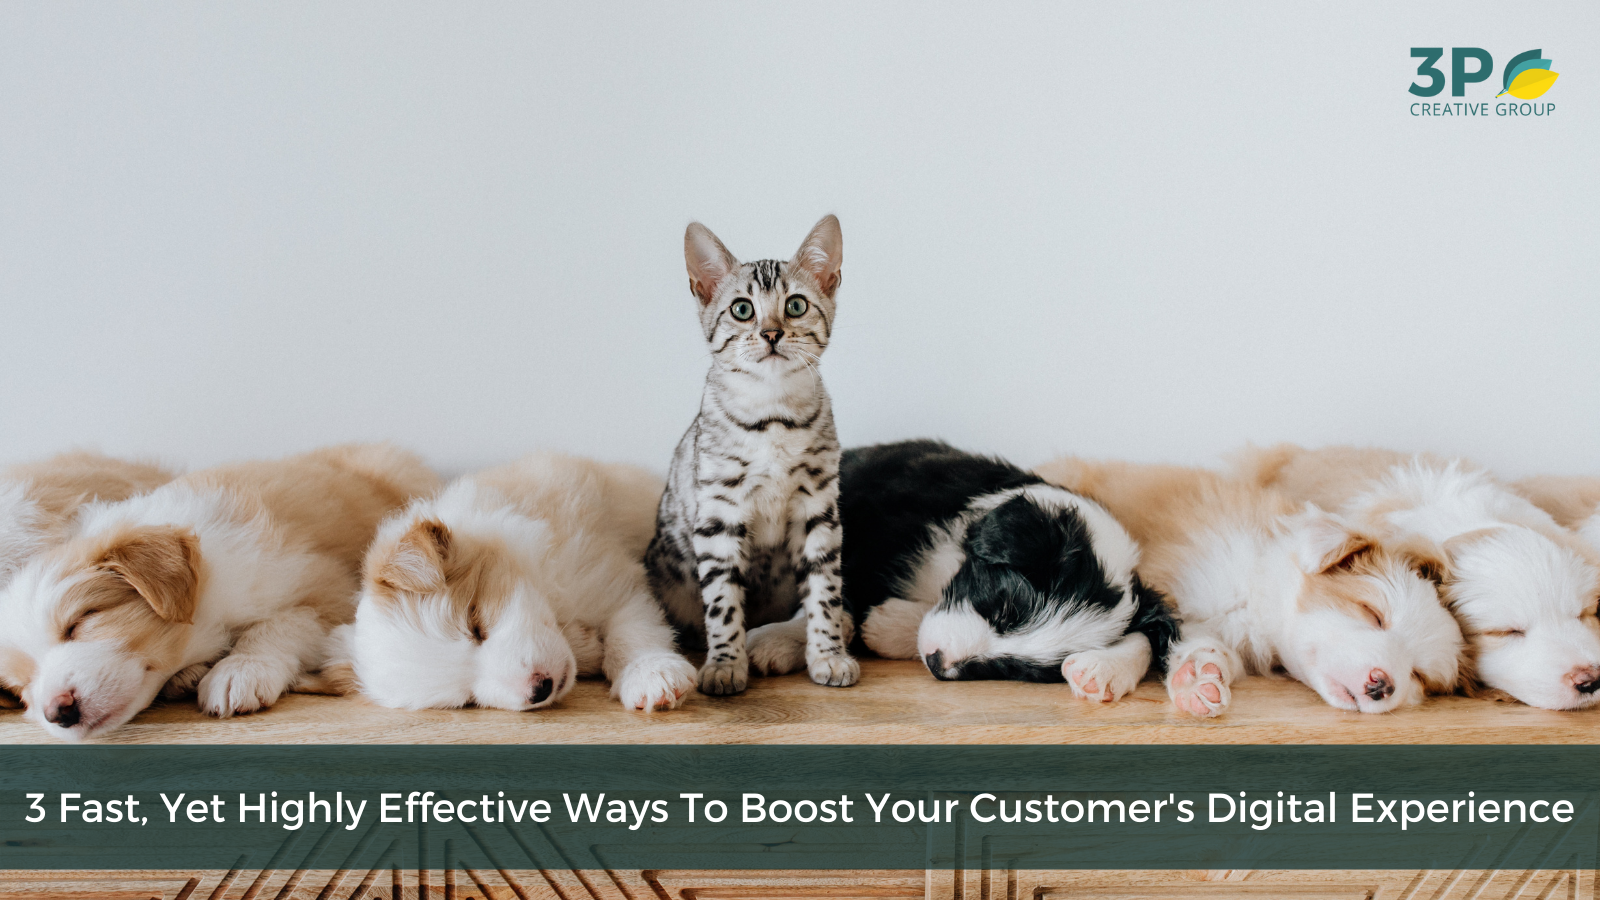 3 Fast, Yet Highly Effective Ways To Boost Your Customer's Digital Experience